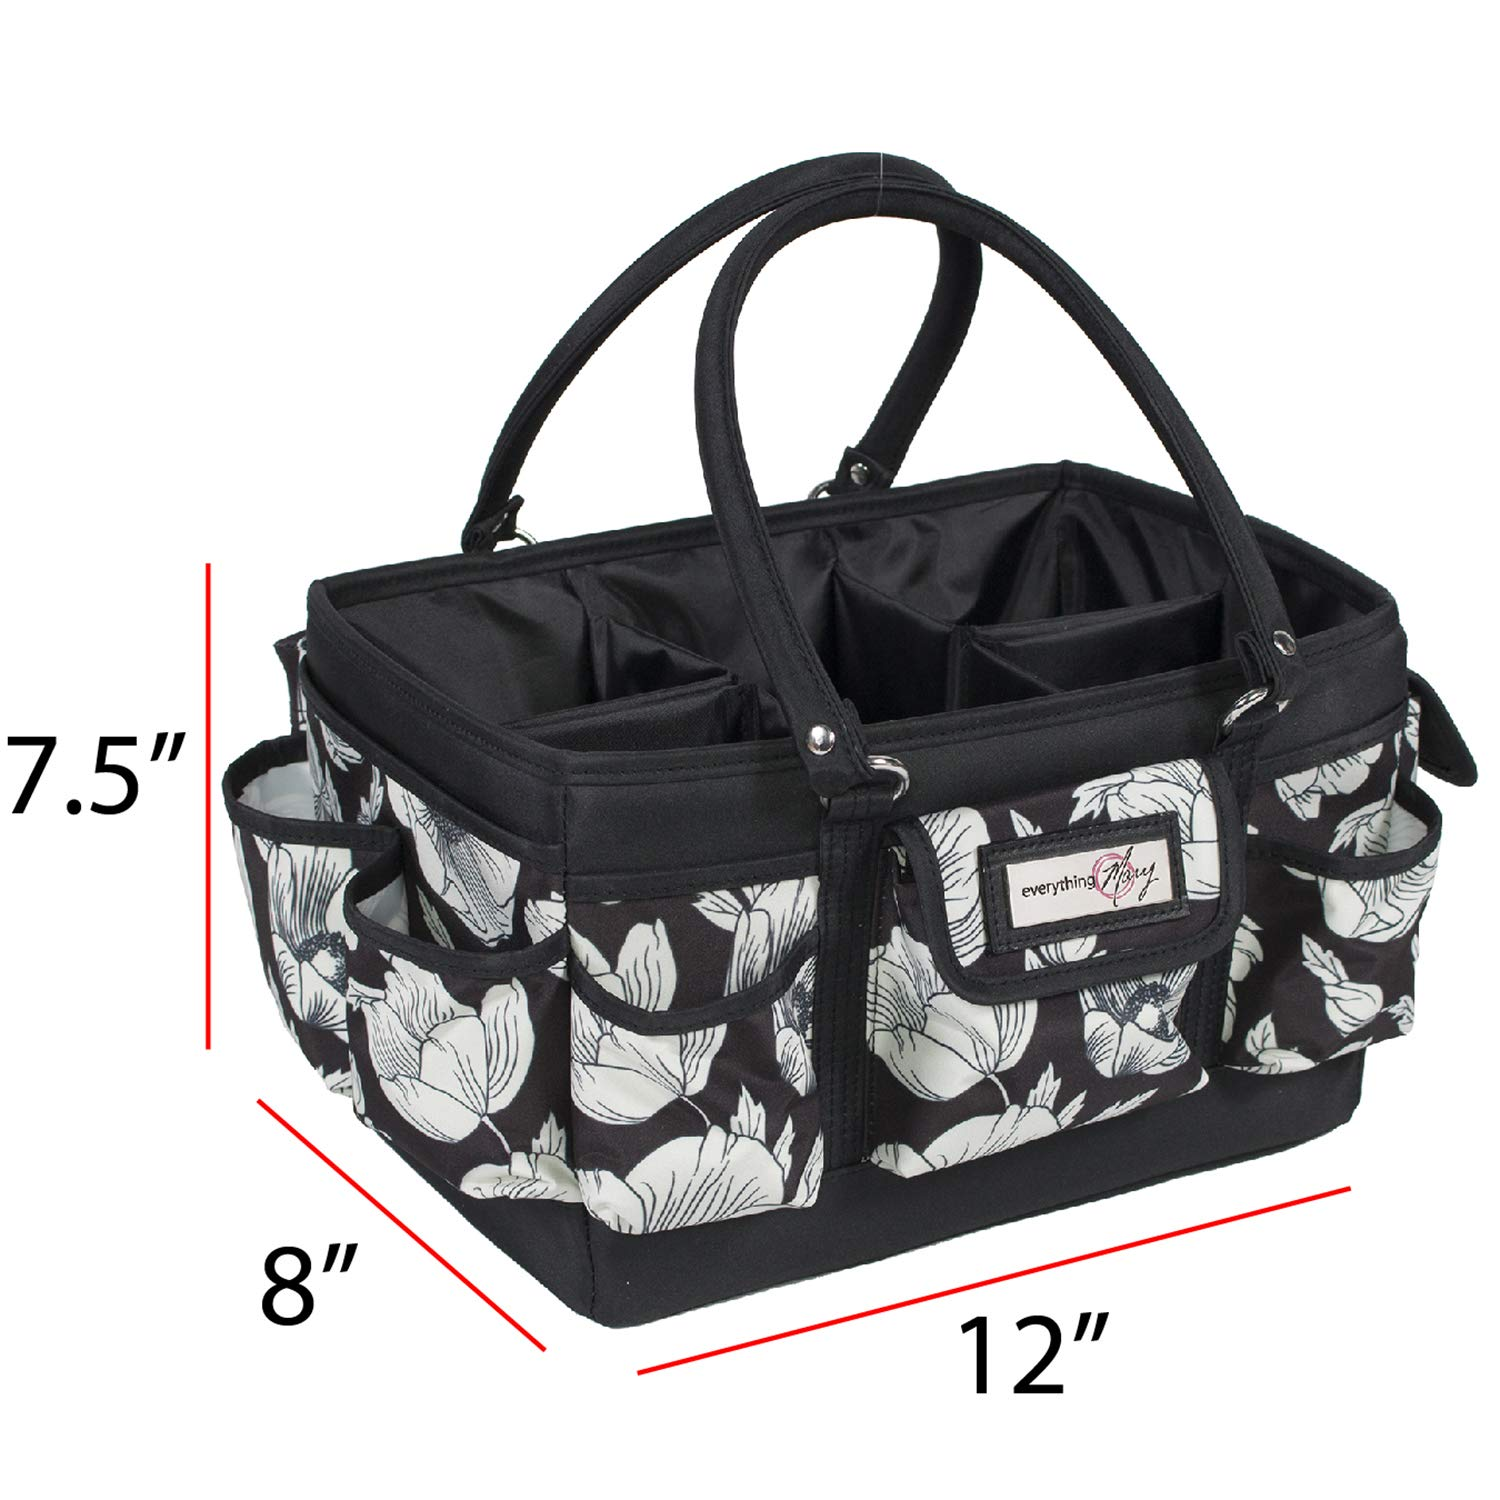 Sewing Everything Mary Black /& Floral Deluxe Store and Tote Paper Art Storage Craft Bag Organizer for Crafts Supplies Storage Organization with Handles for Travel Canvas Desk